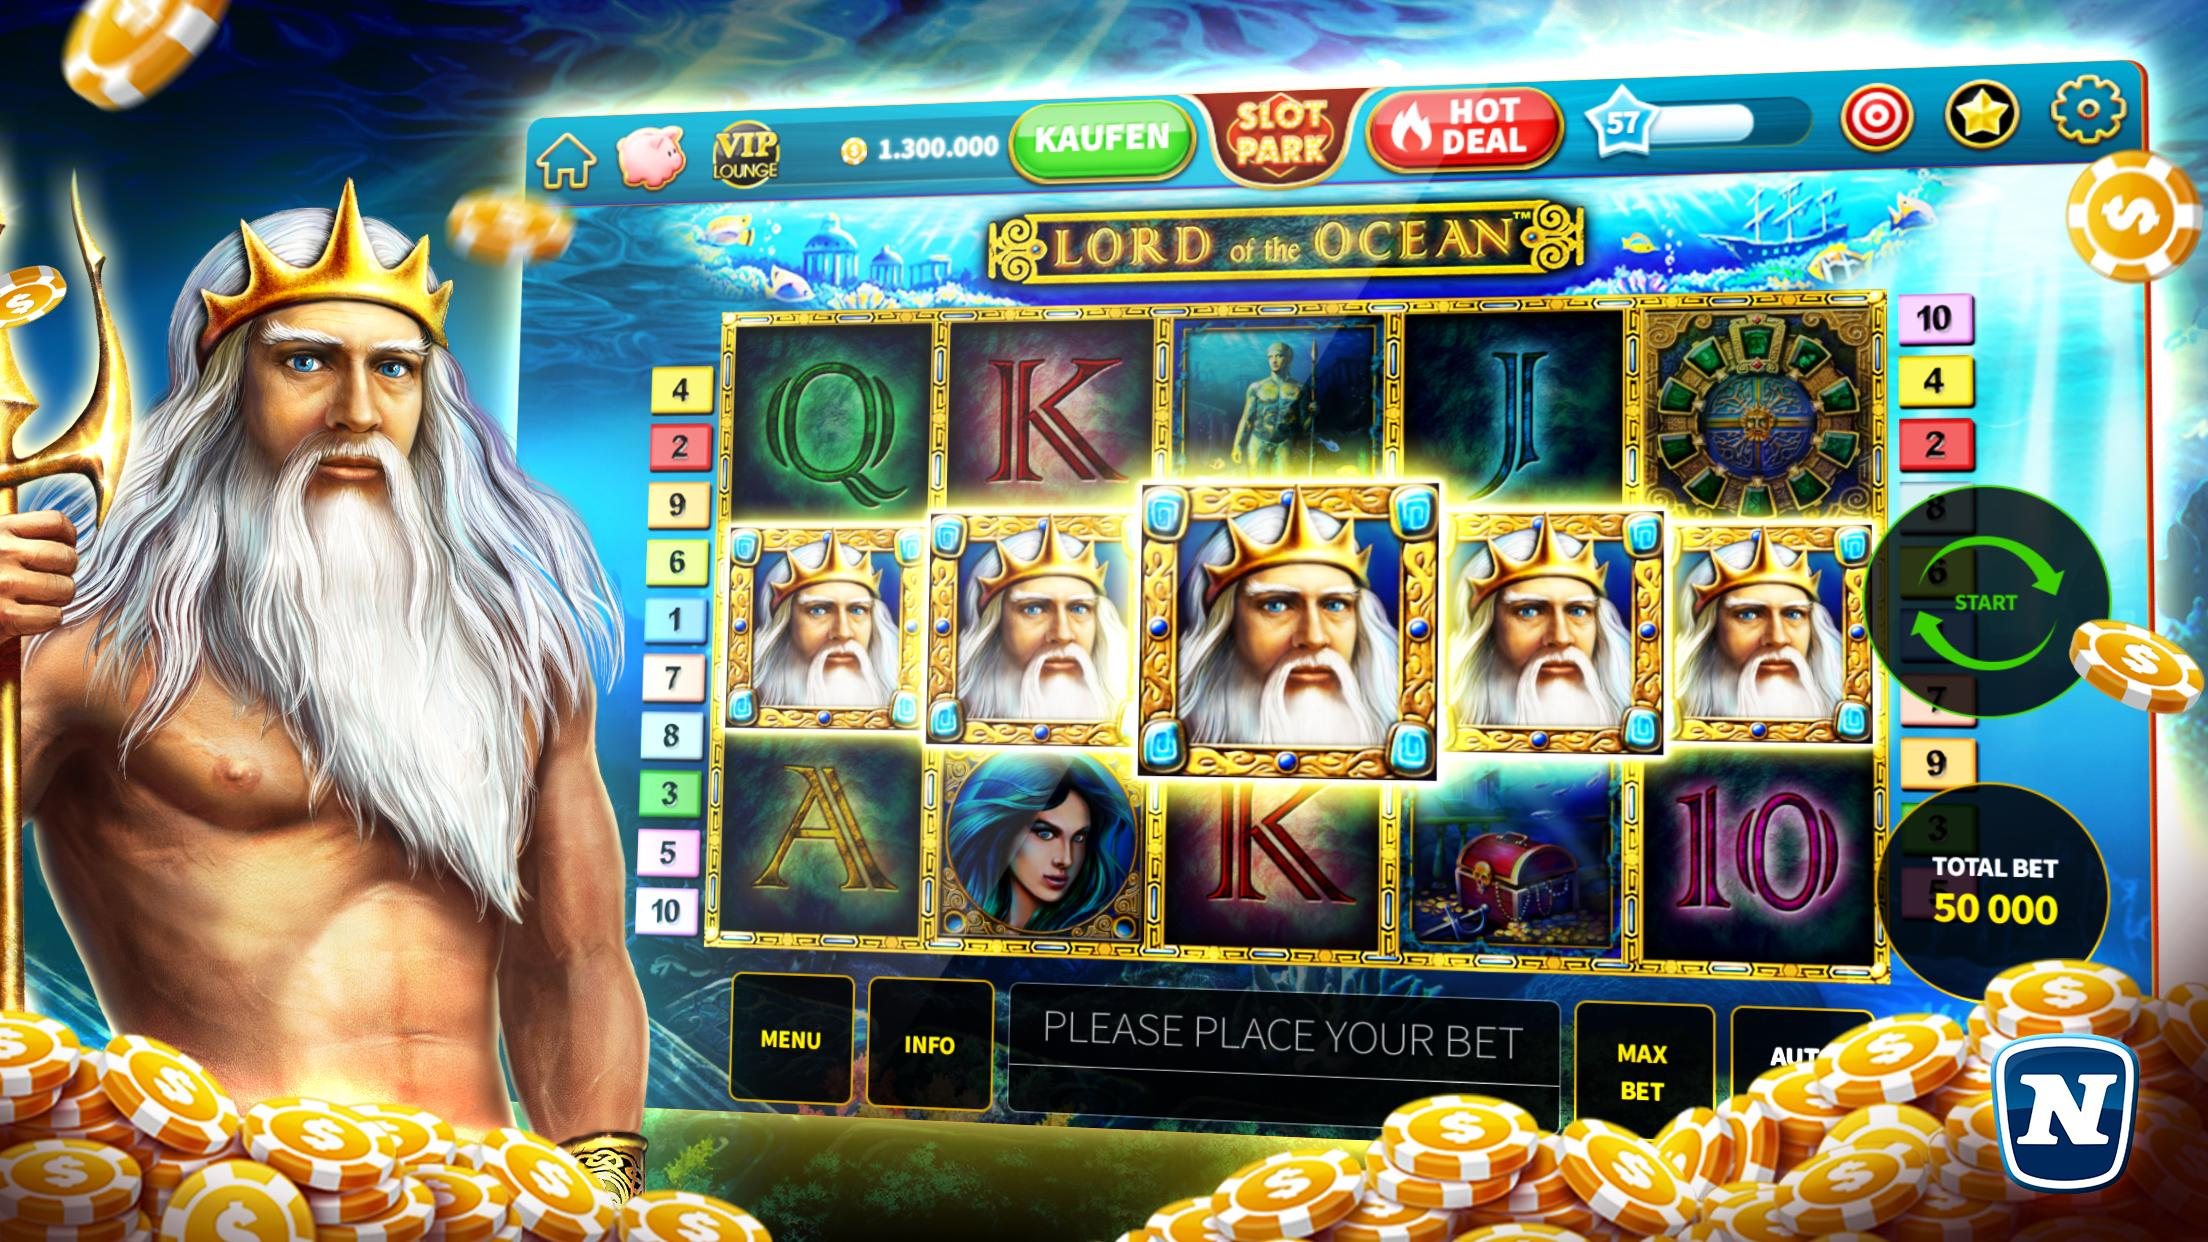 Slotpark Online Casino Games & Free Slot Machine 3.21.1 Screenshot 11